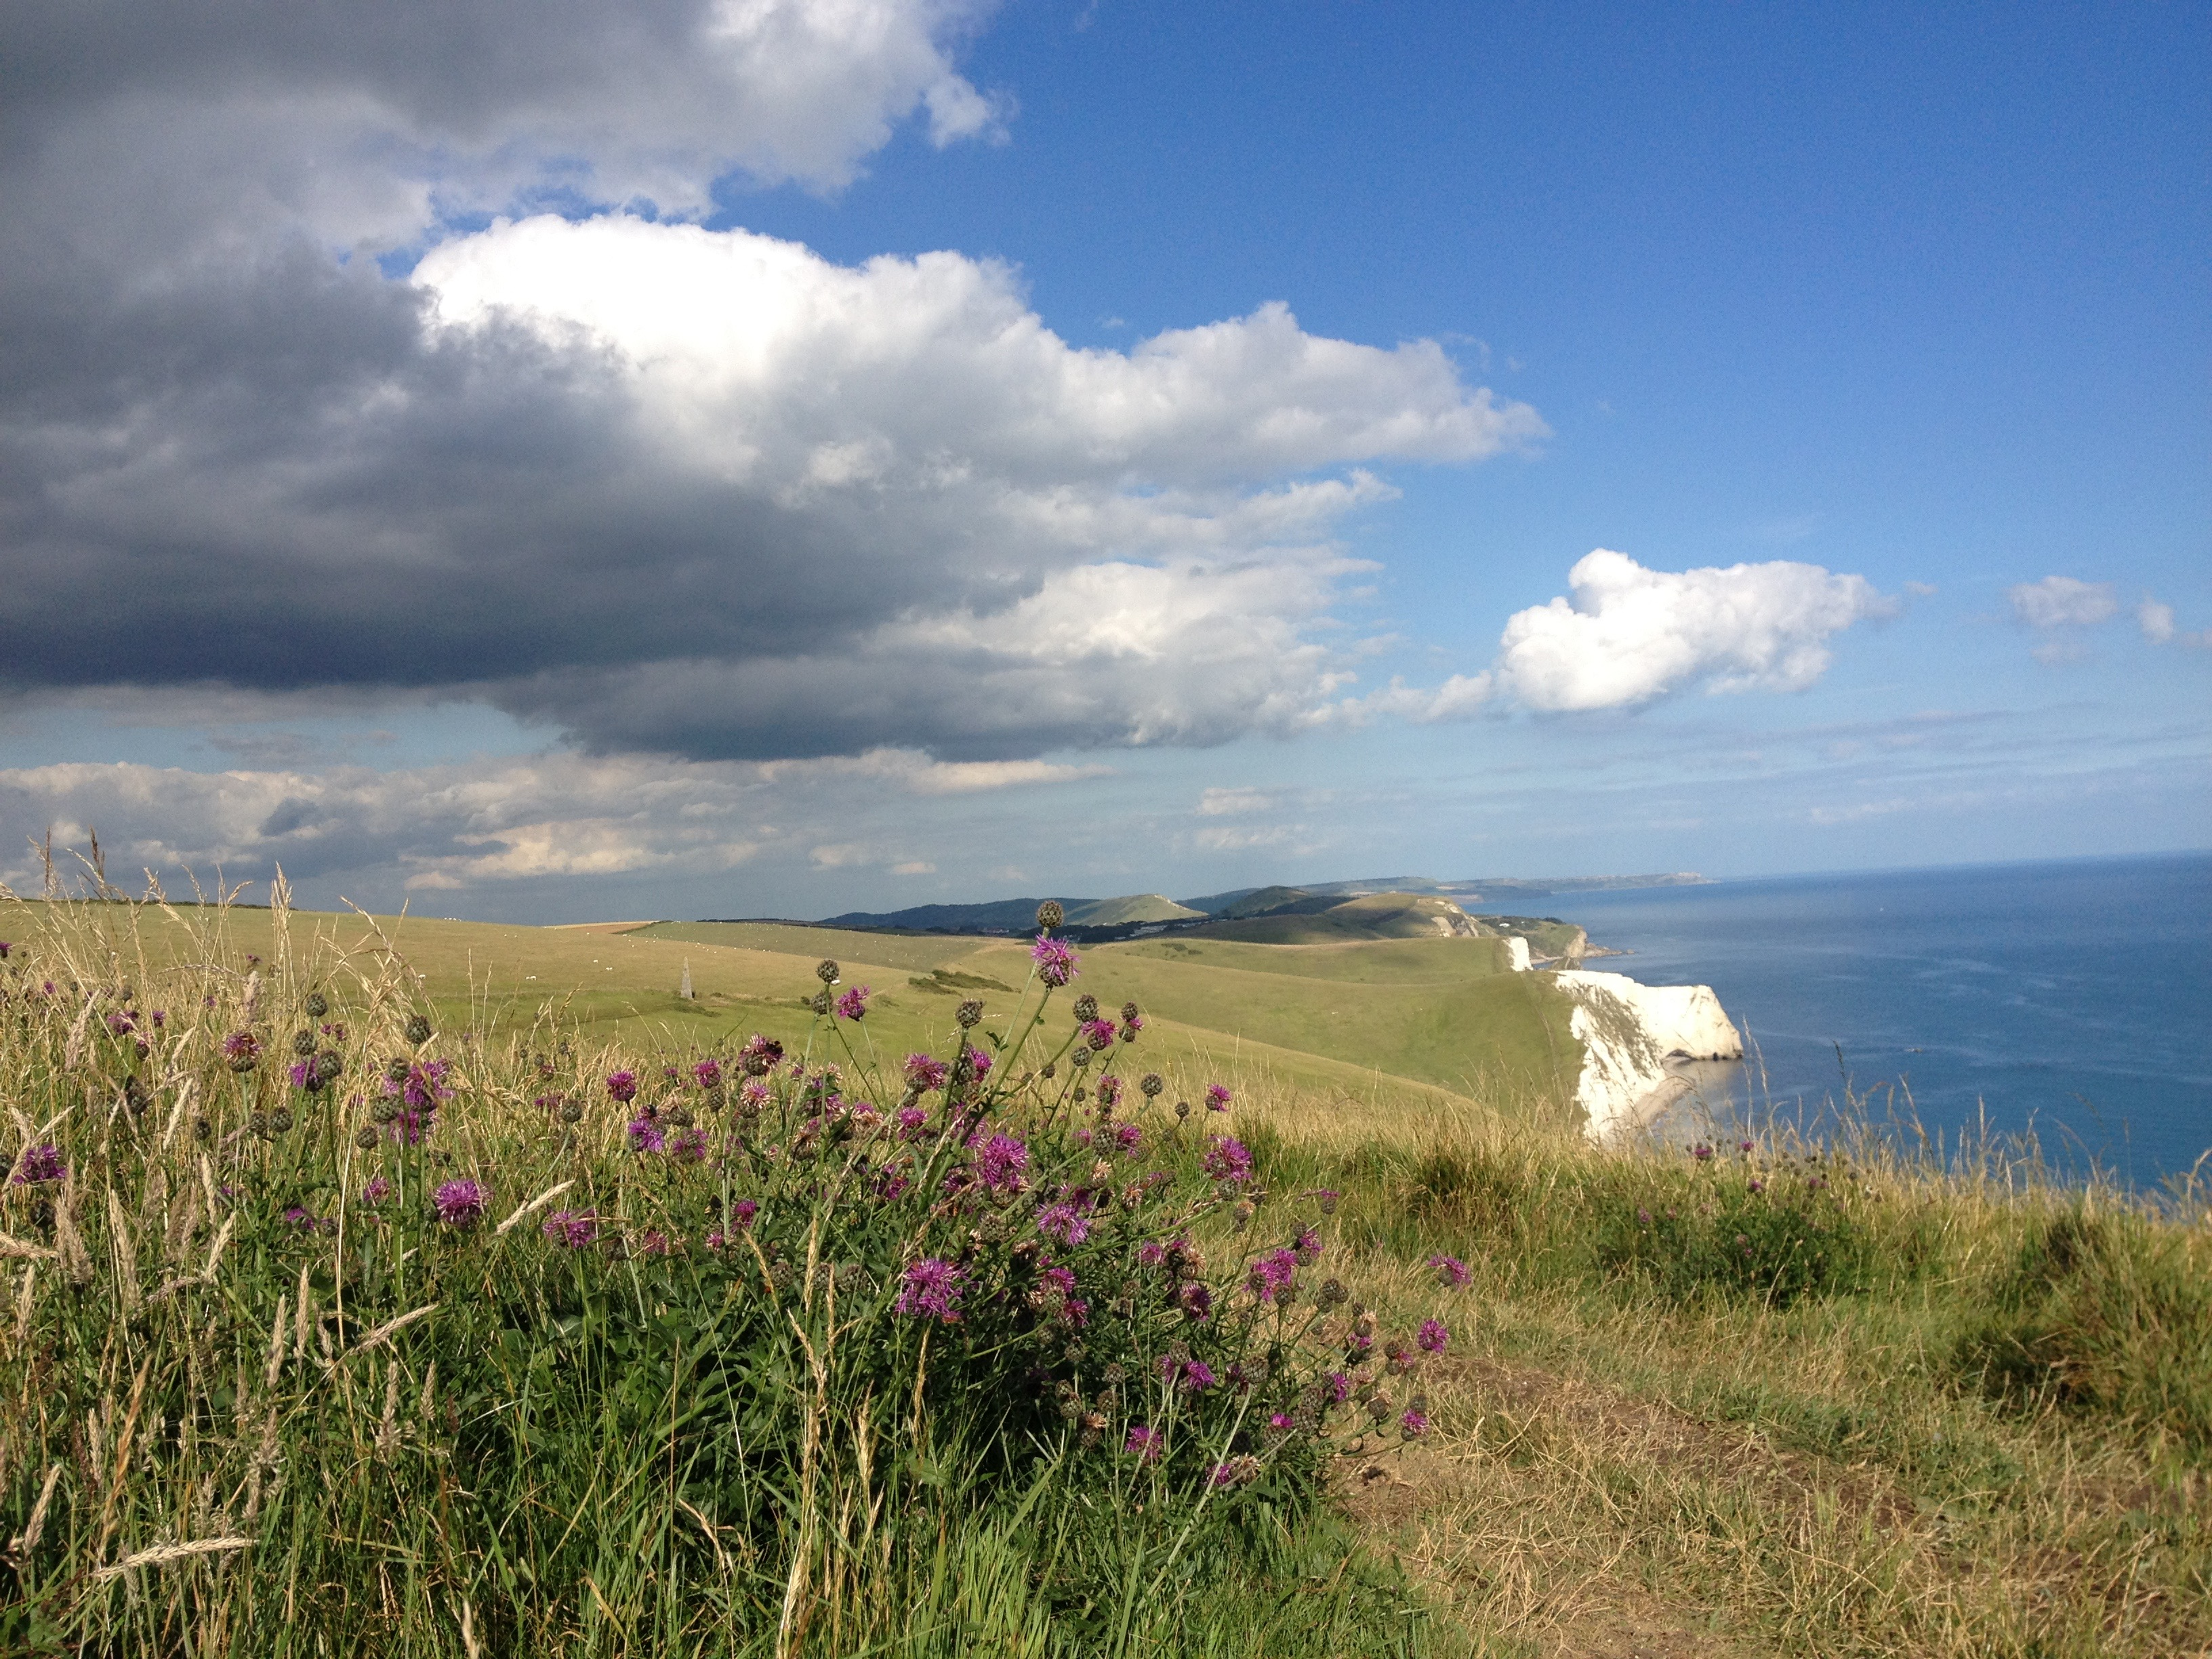 hiking along the Jurassic Coast from The Pink House Lulworth